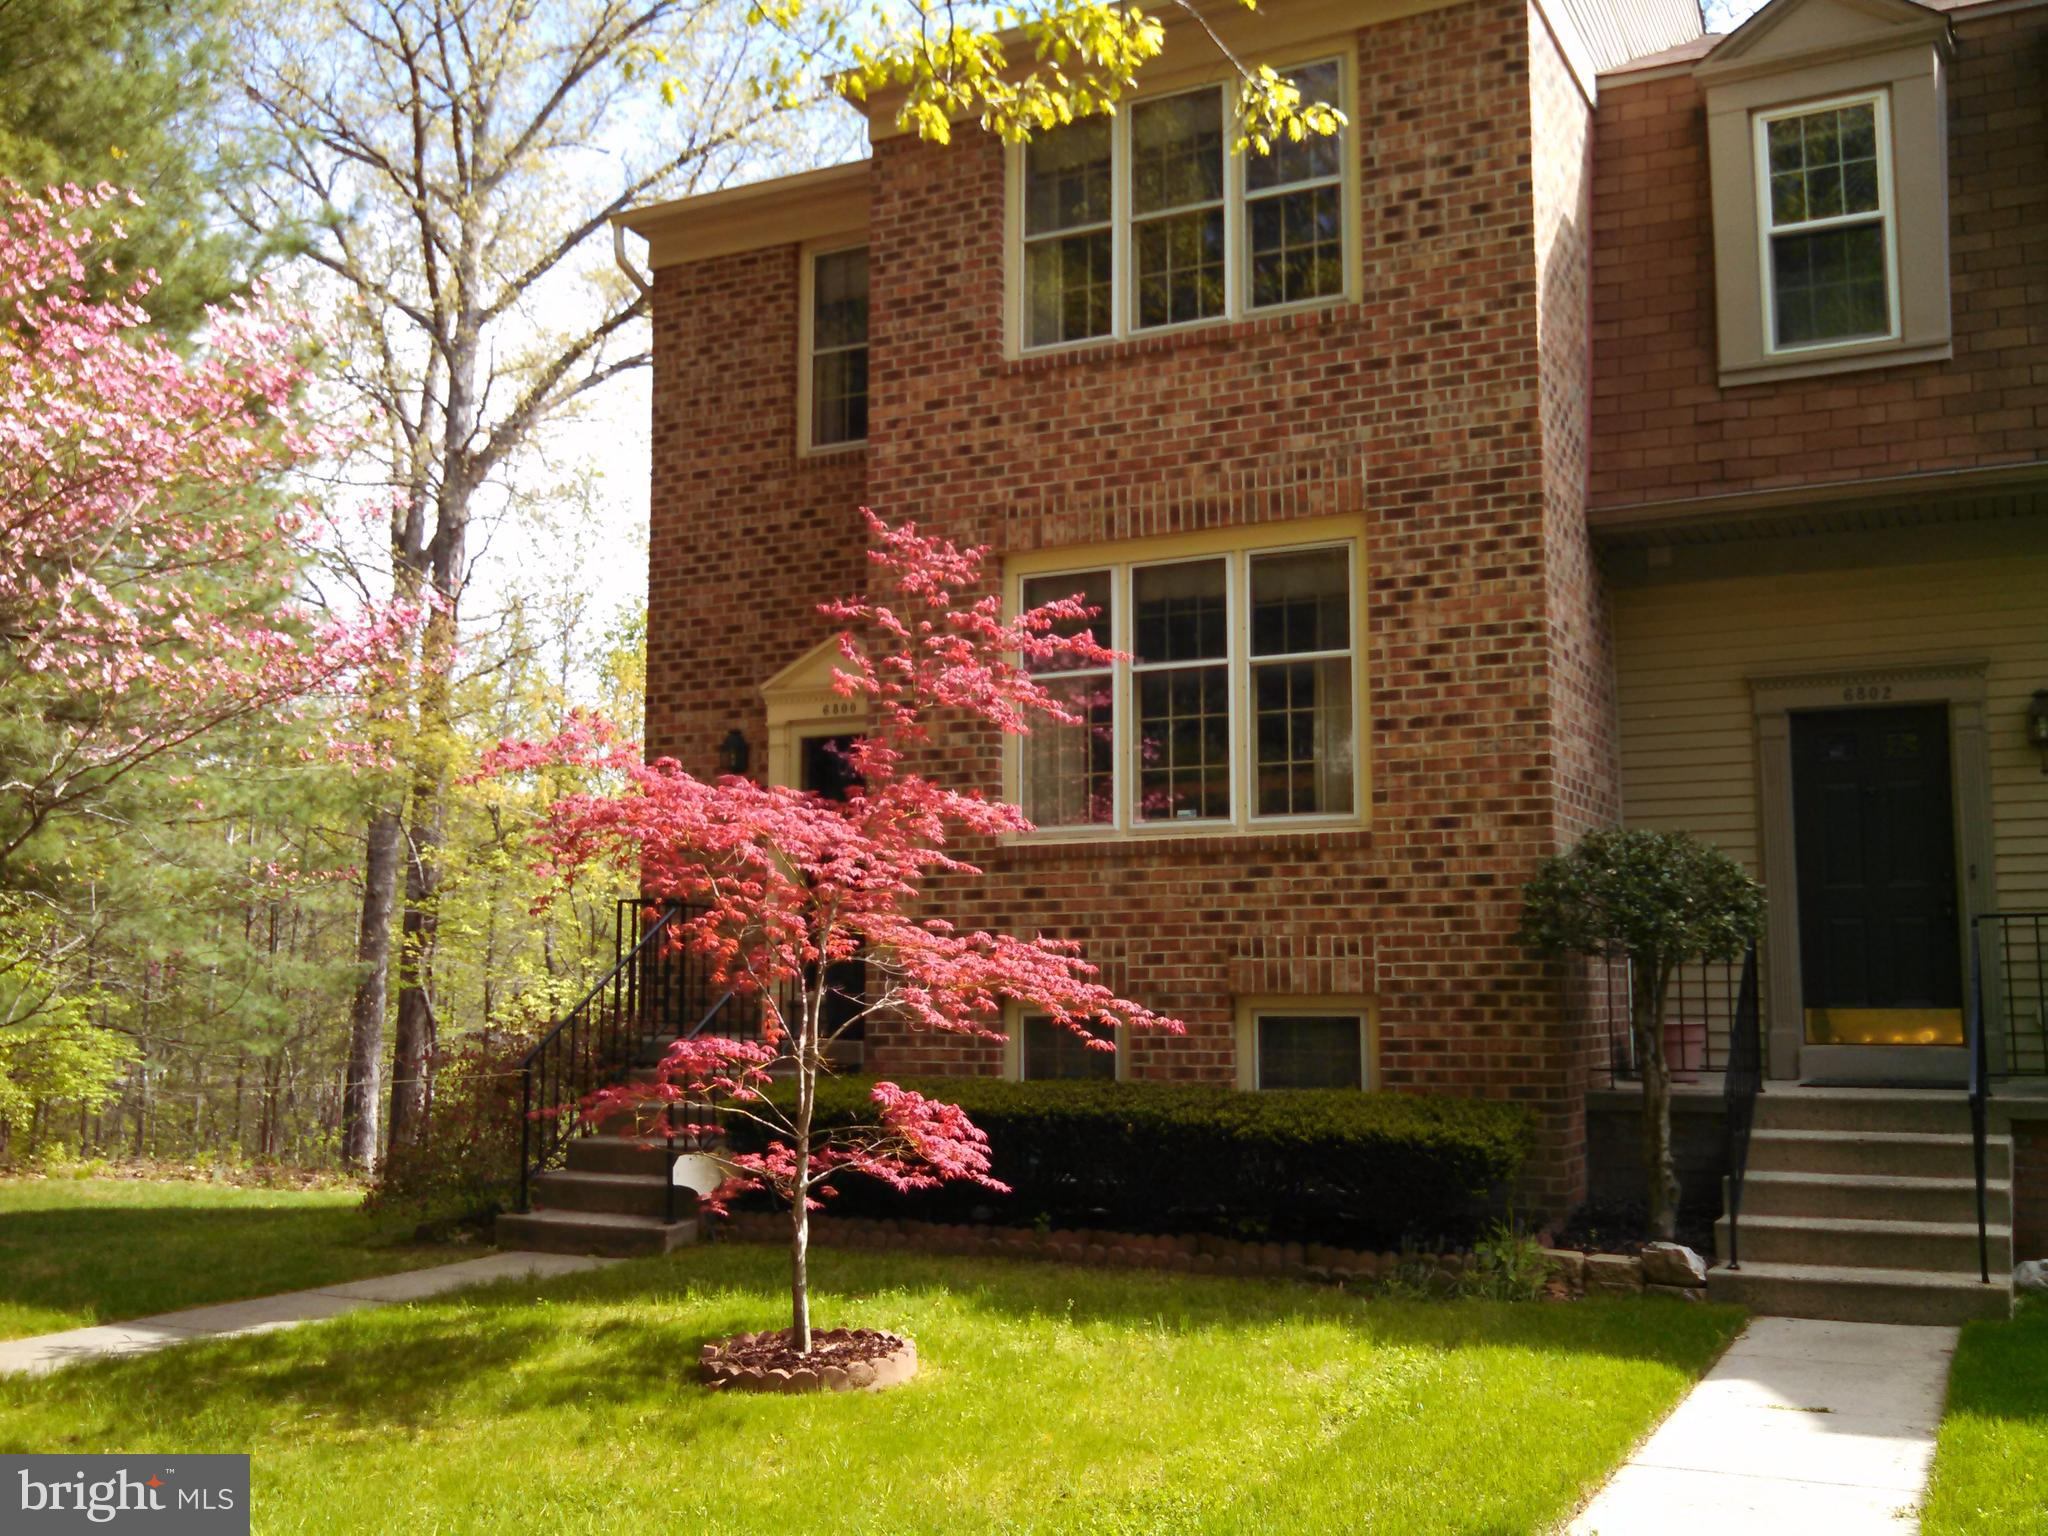 Gorgeous End Unit Townhouse, 4BR, 3.5BA, Renovated Kitchen, New Appliances, Stove/Dishwasher/Microwave, New SS Refrigerator, Freshly Painted, Front & Side Bricks, New Hardwood Floors on Main Level, New Granite Counter Tops, New Recessed Lights & Light Fixtures, Large Double Decks, Fenced in Backyard, Beautiful Views Outside, Walking Tracks, Popular Community and Convenient Location, Near I-95, 495, 395, Shopping Center & Mall, and Much More, Must See It!.  If visiting the property with children,  please guide them not to play in the house.